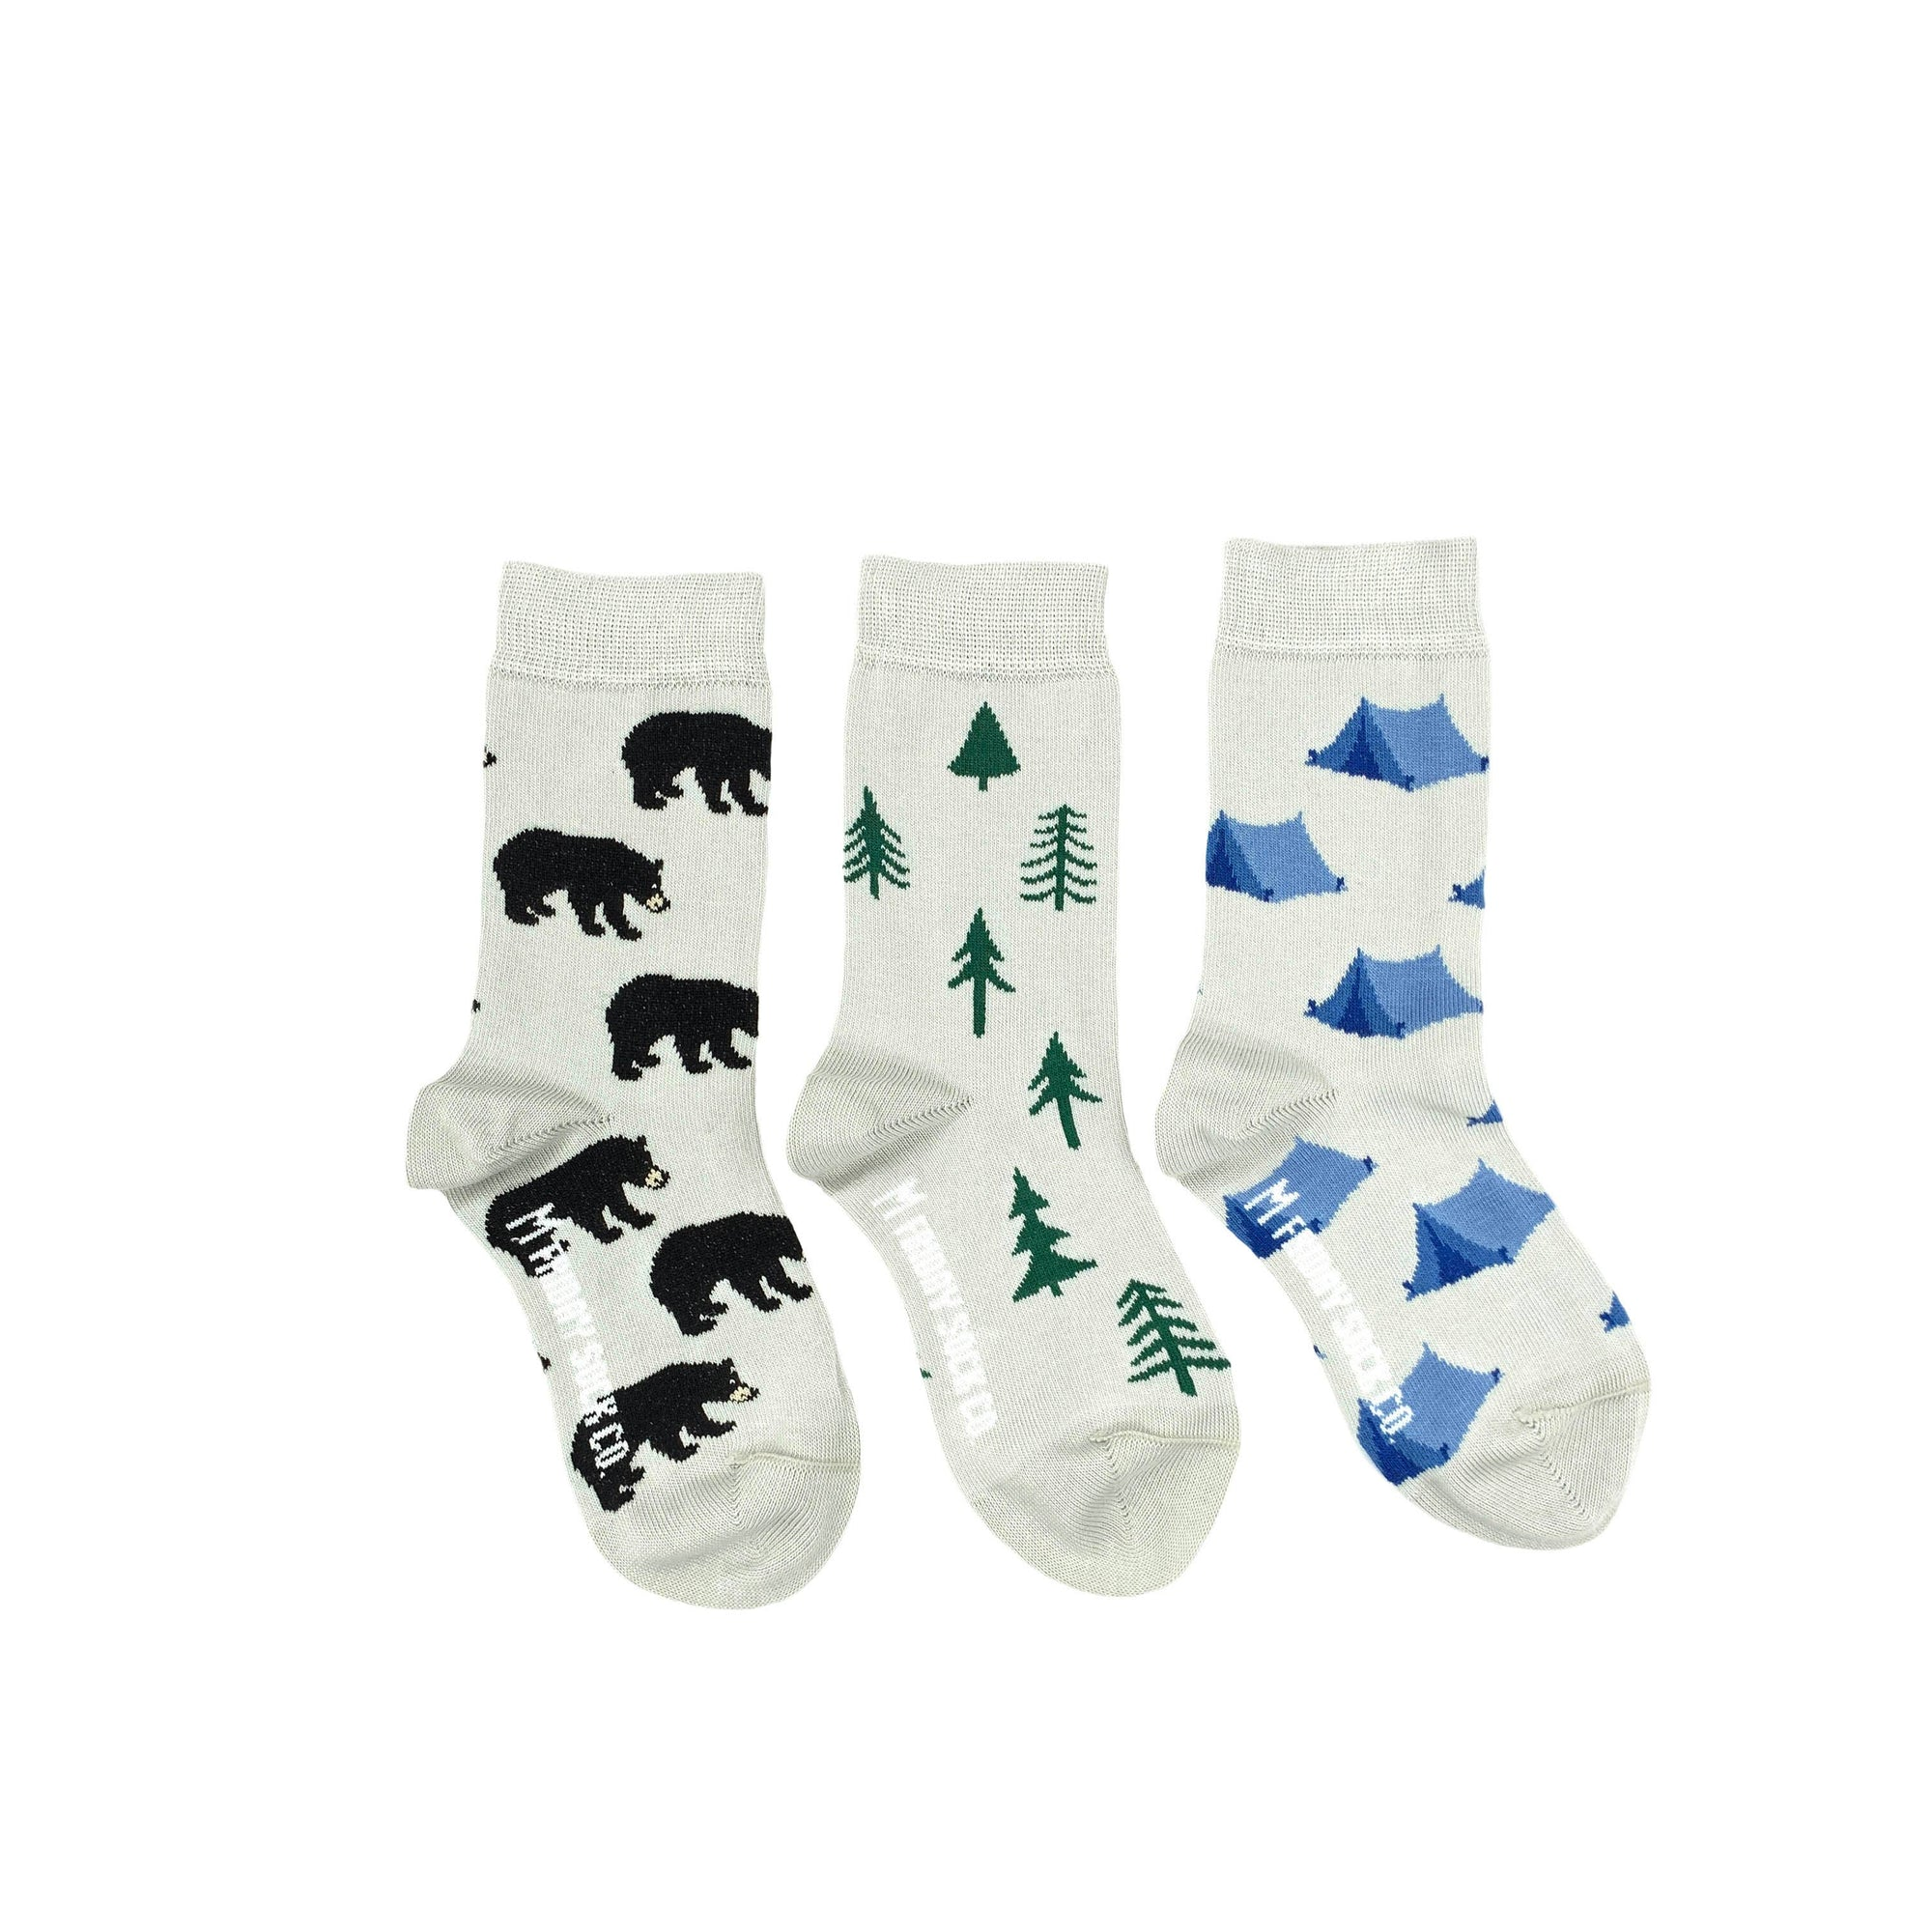 Friday Sock Co. Kid's Socks | Tent, Tree & Bear | Mismatched